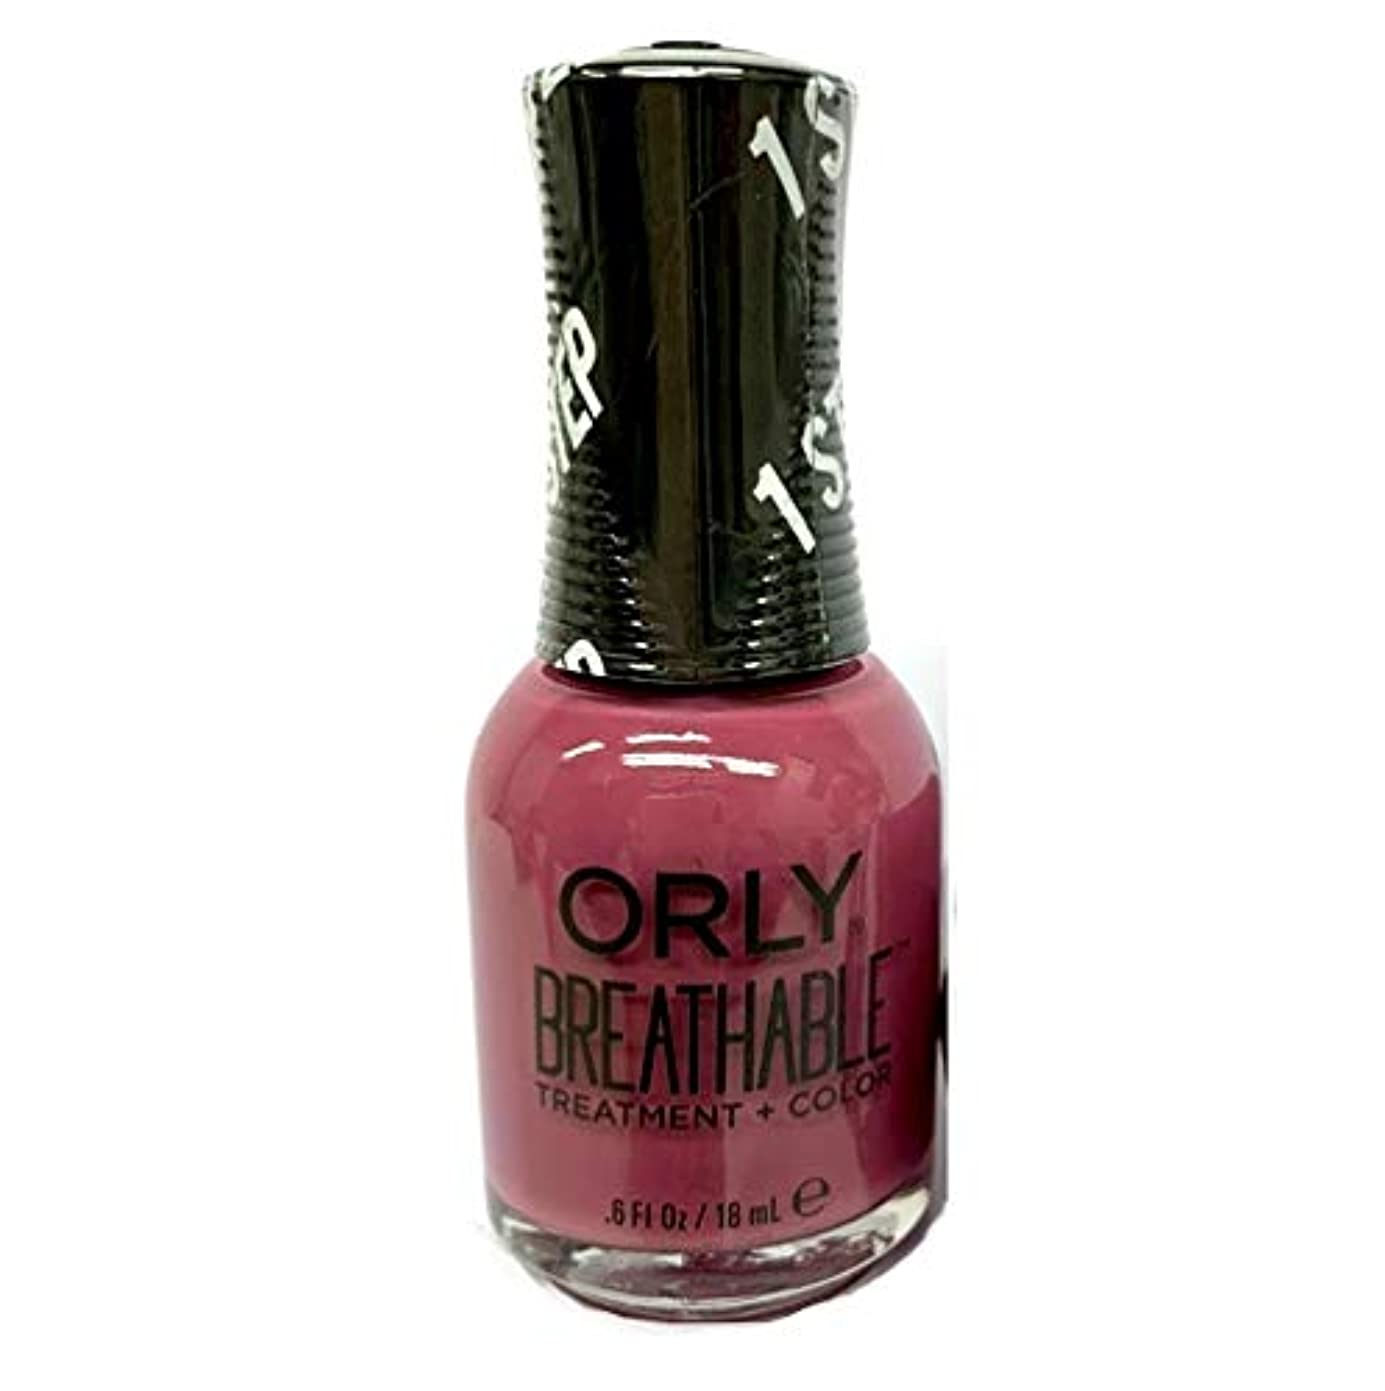 同一性病的スクレーパーORLY Breathable Lacquer - Treatment+Color - Cosmic Shift 2019 Collection - Supernova Girl - 18mL / 0.6oz